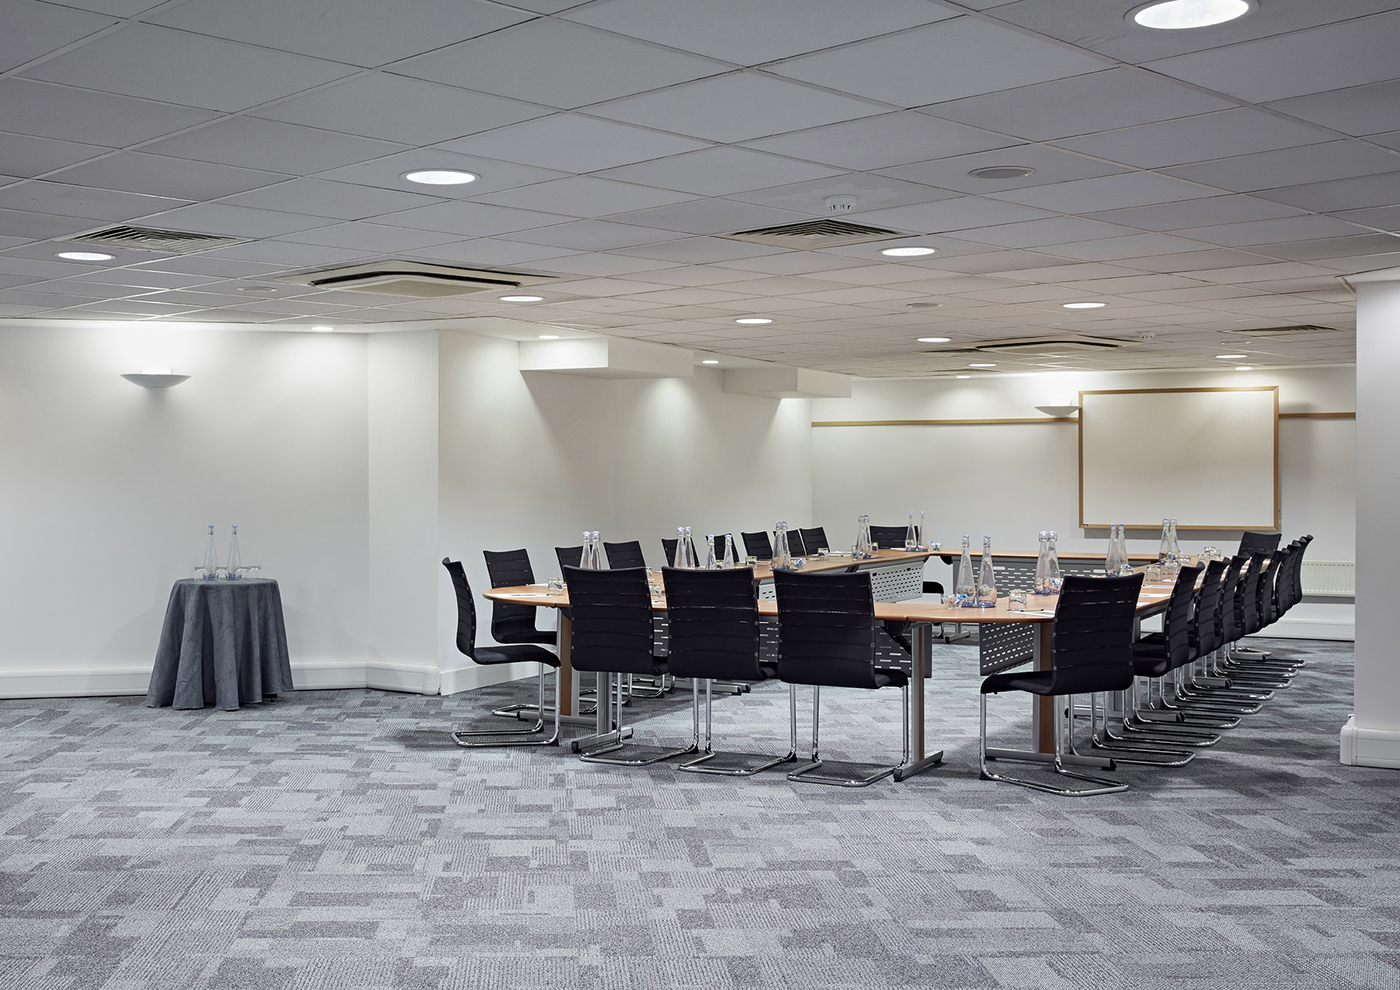 X large 1566303605 robert runcie   boardroom style 2 church house conference centre london